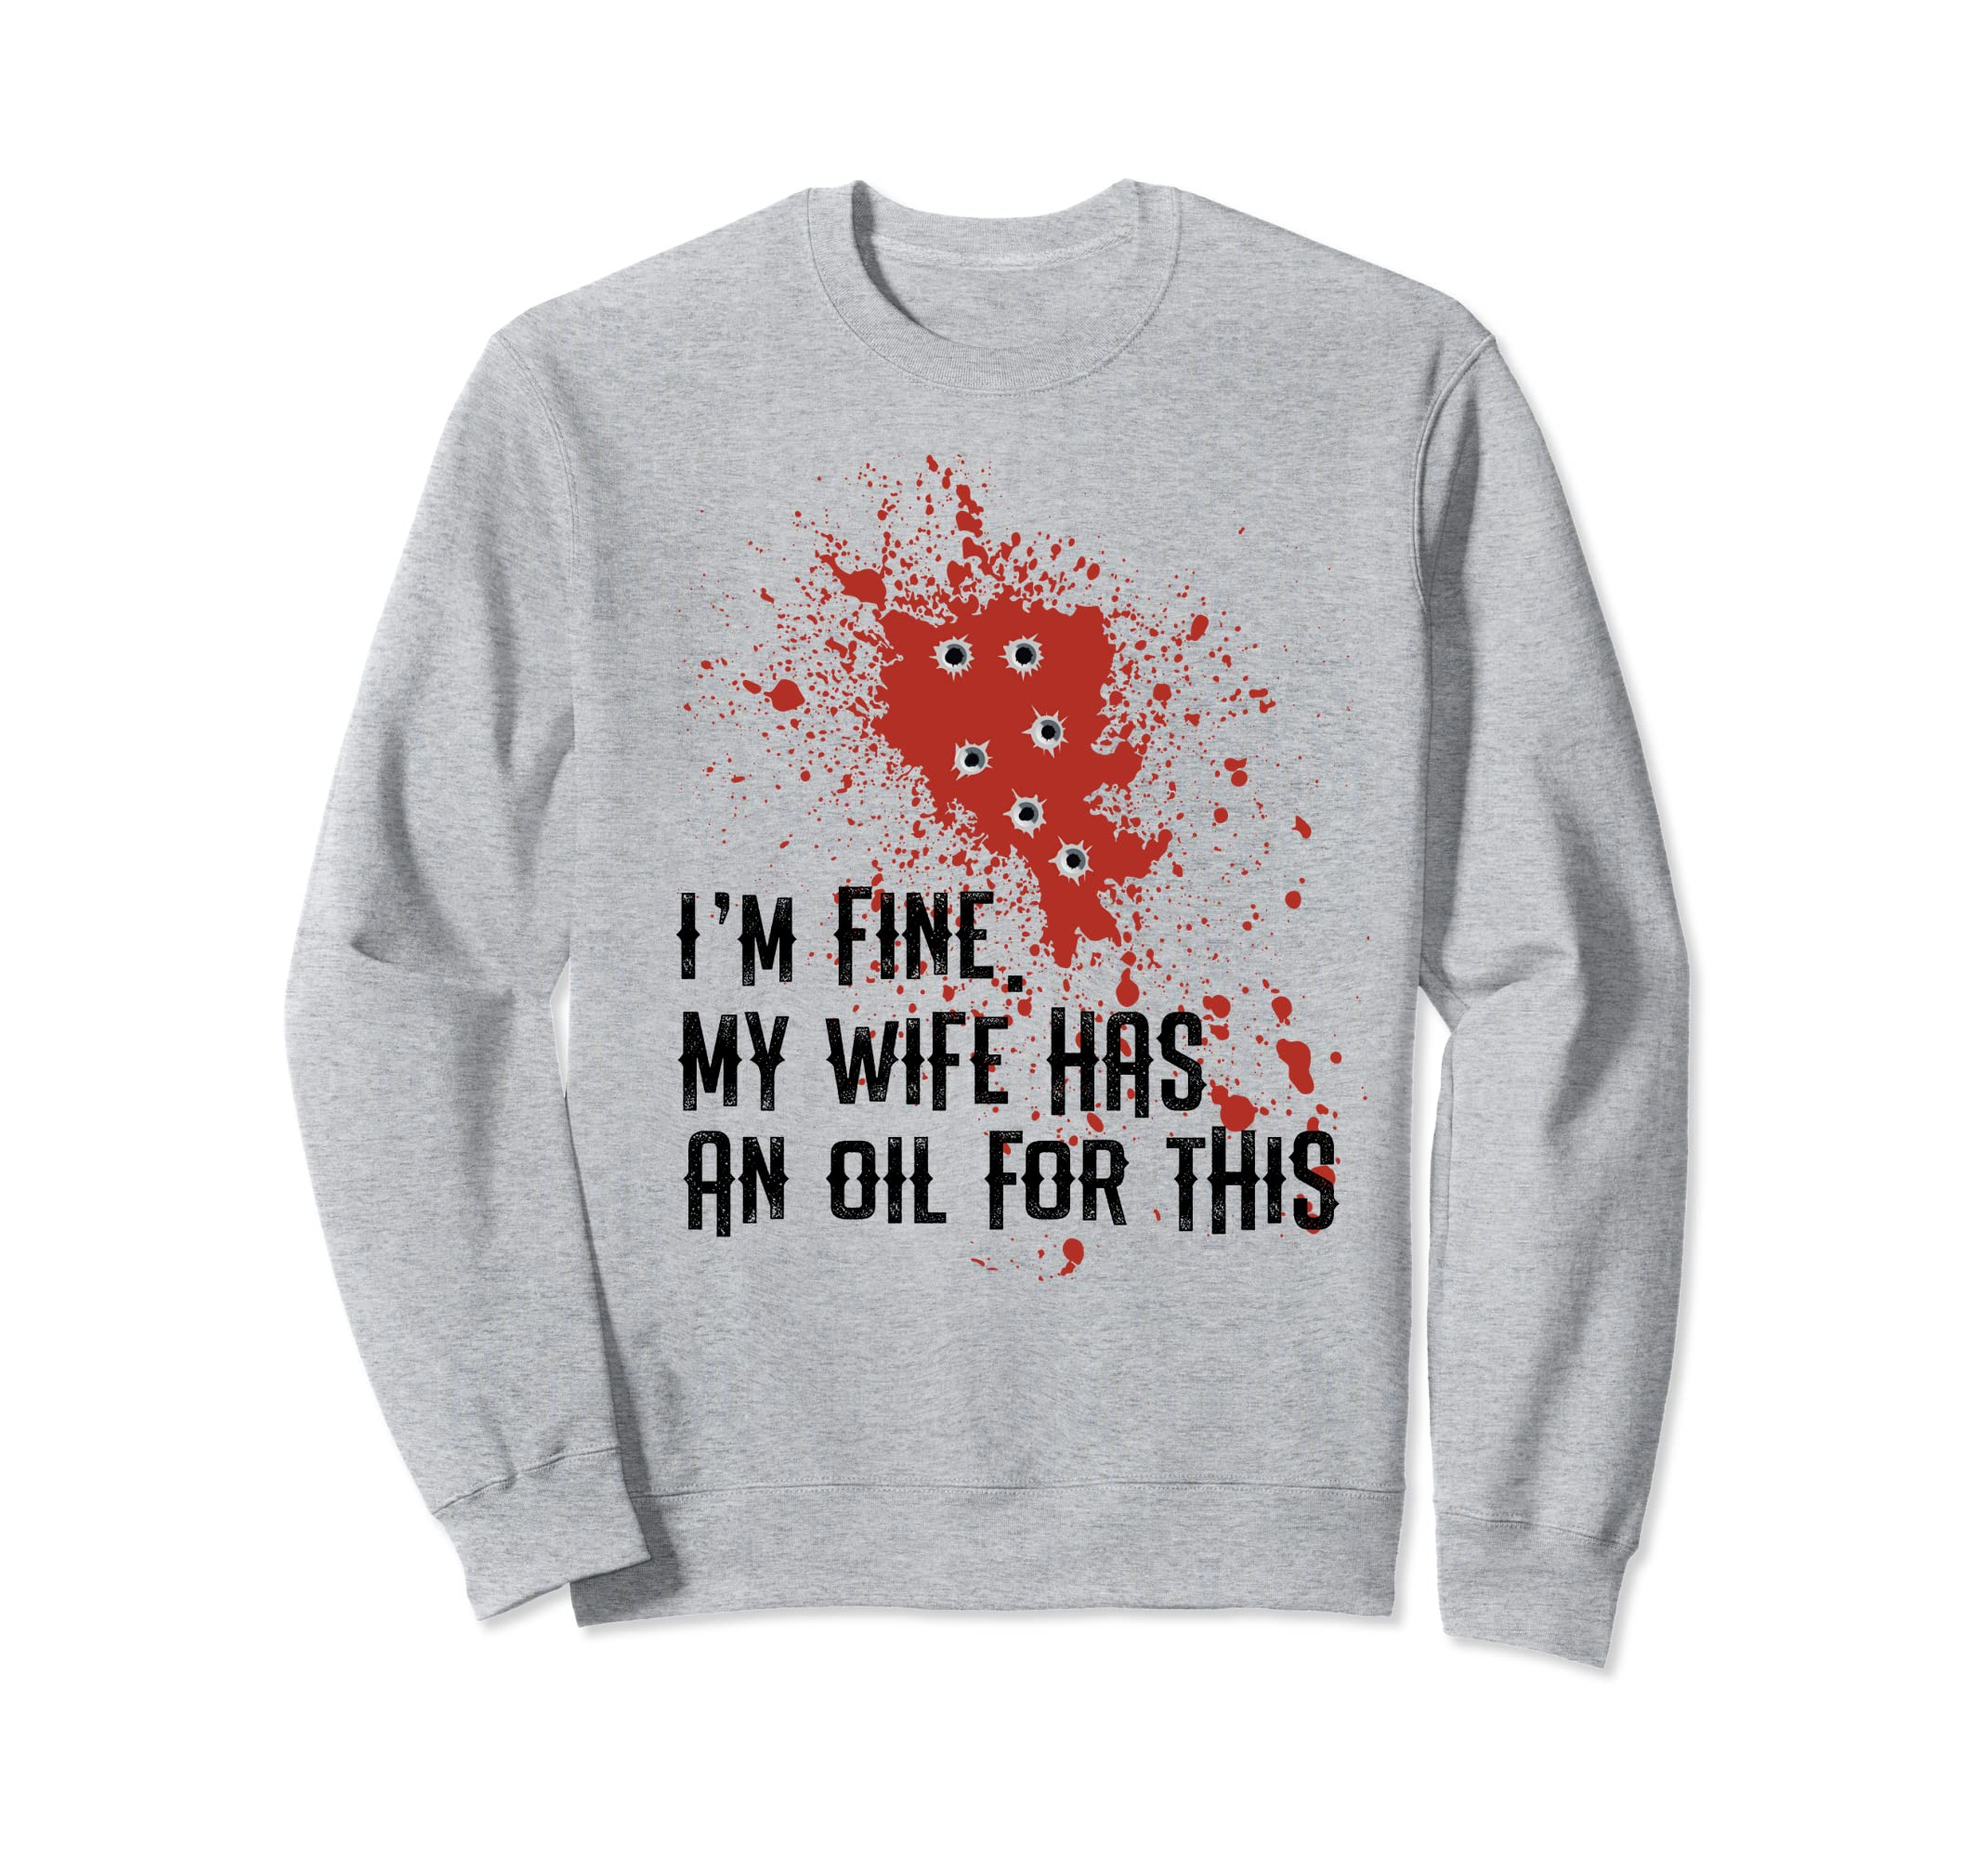 Essential Oils Husband Blood fun Halloween Sweatshirt gift-Rose